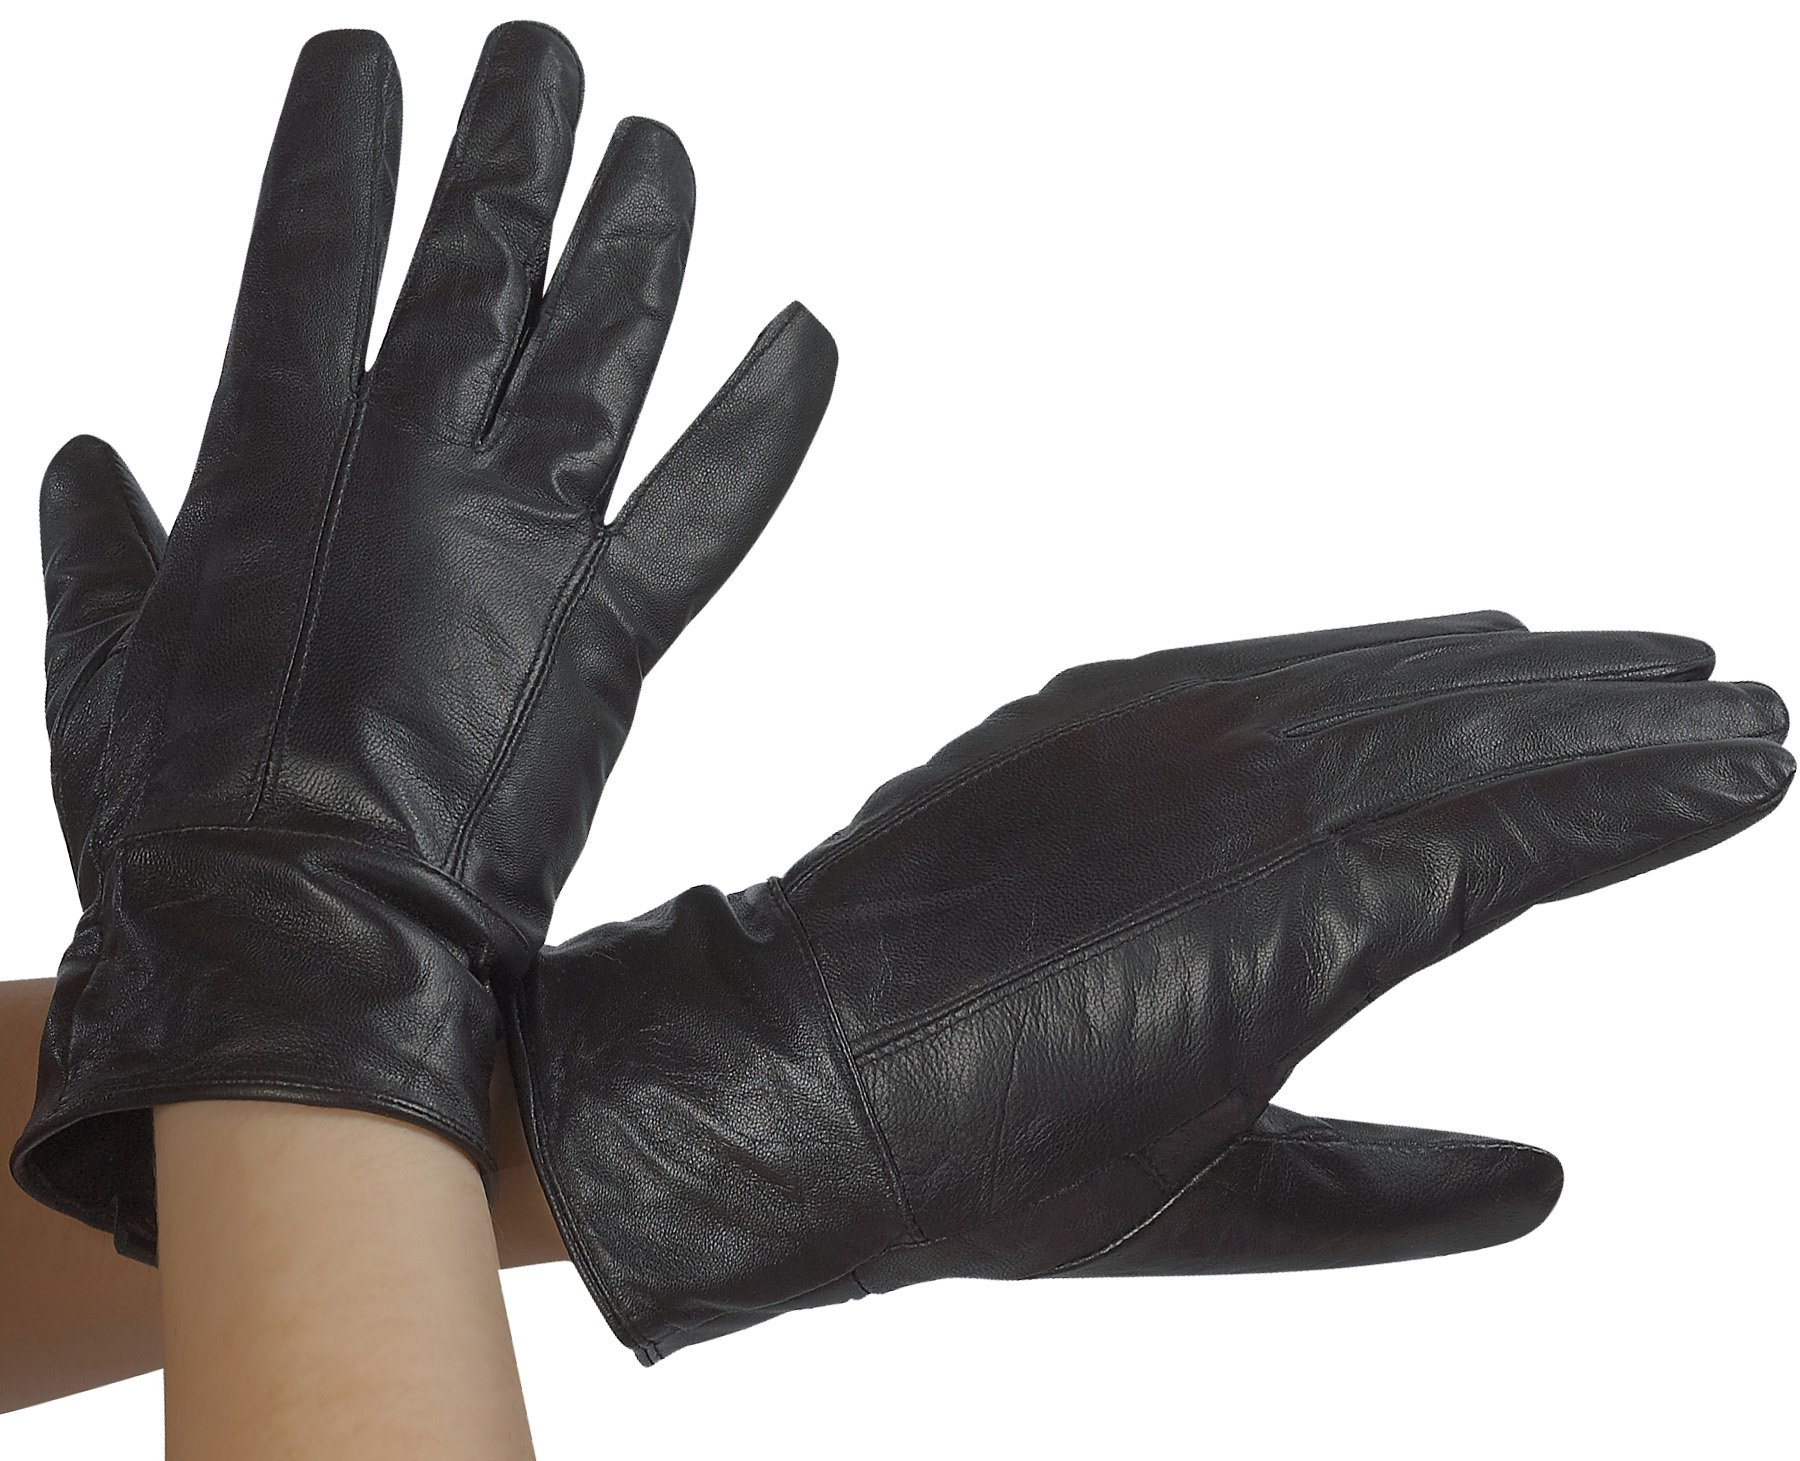 Classic Womens Black Leather Gloves Thinsulate Lining Medium by DEBRA WEITZNER